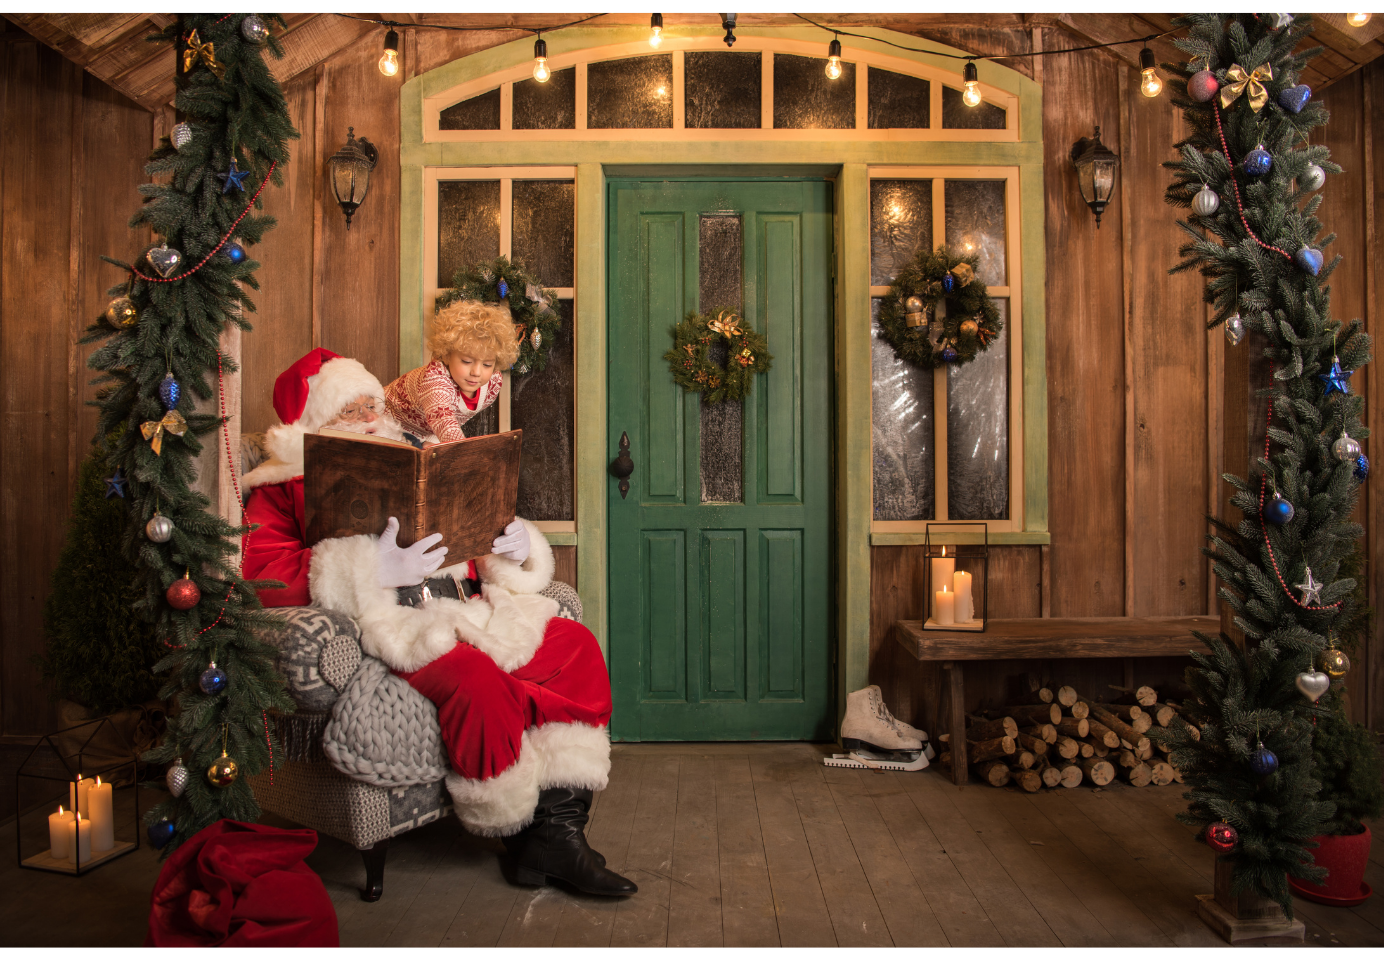 Santa reading a story to a child outside